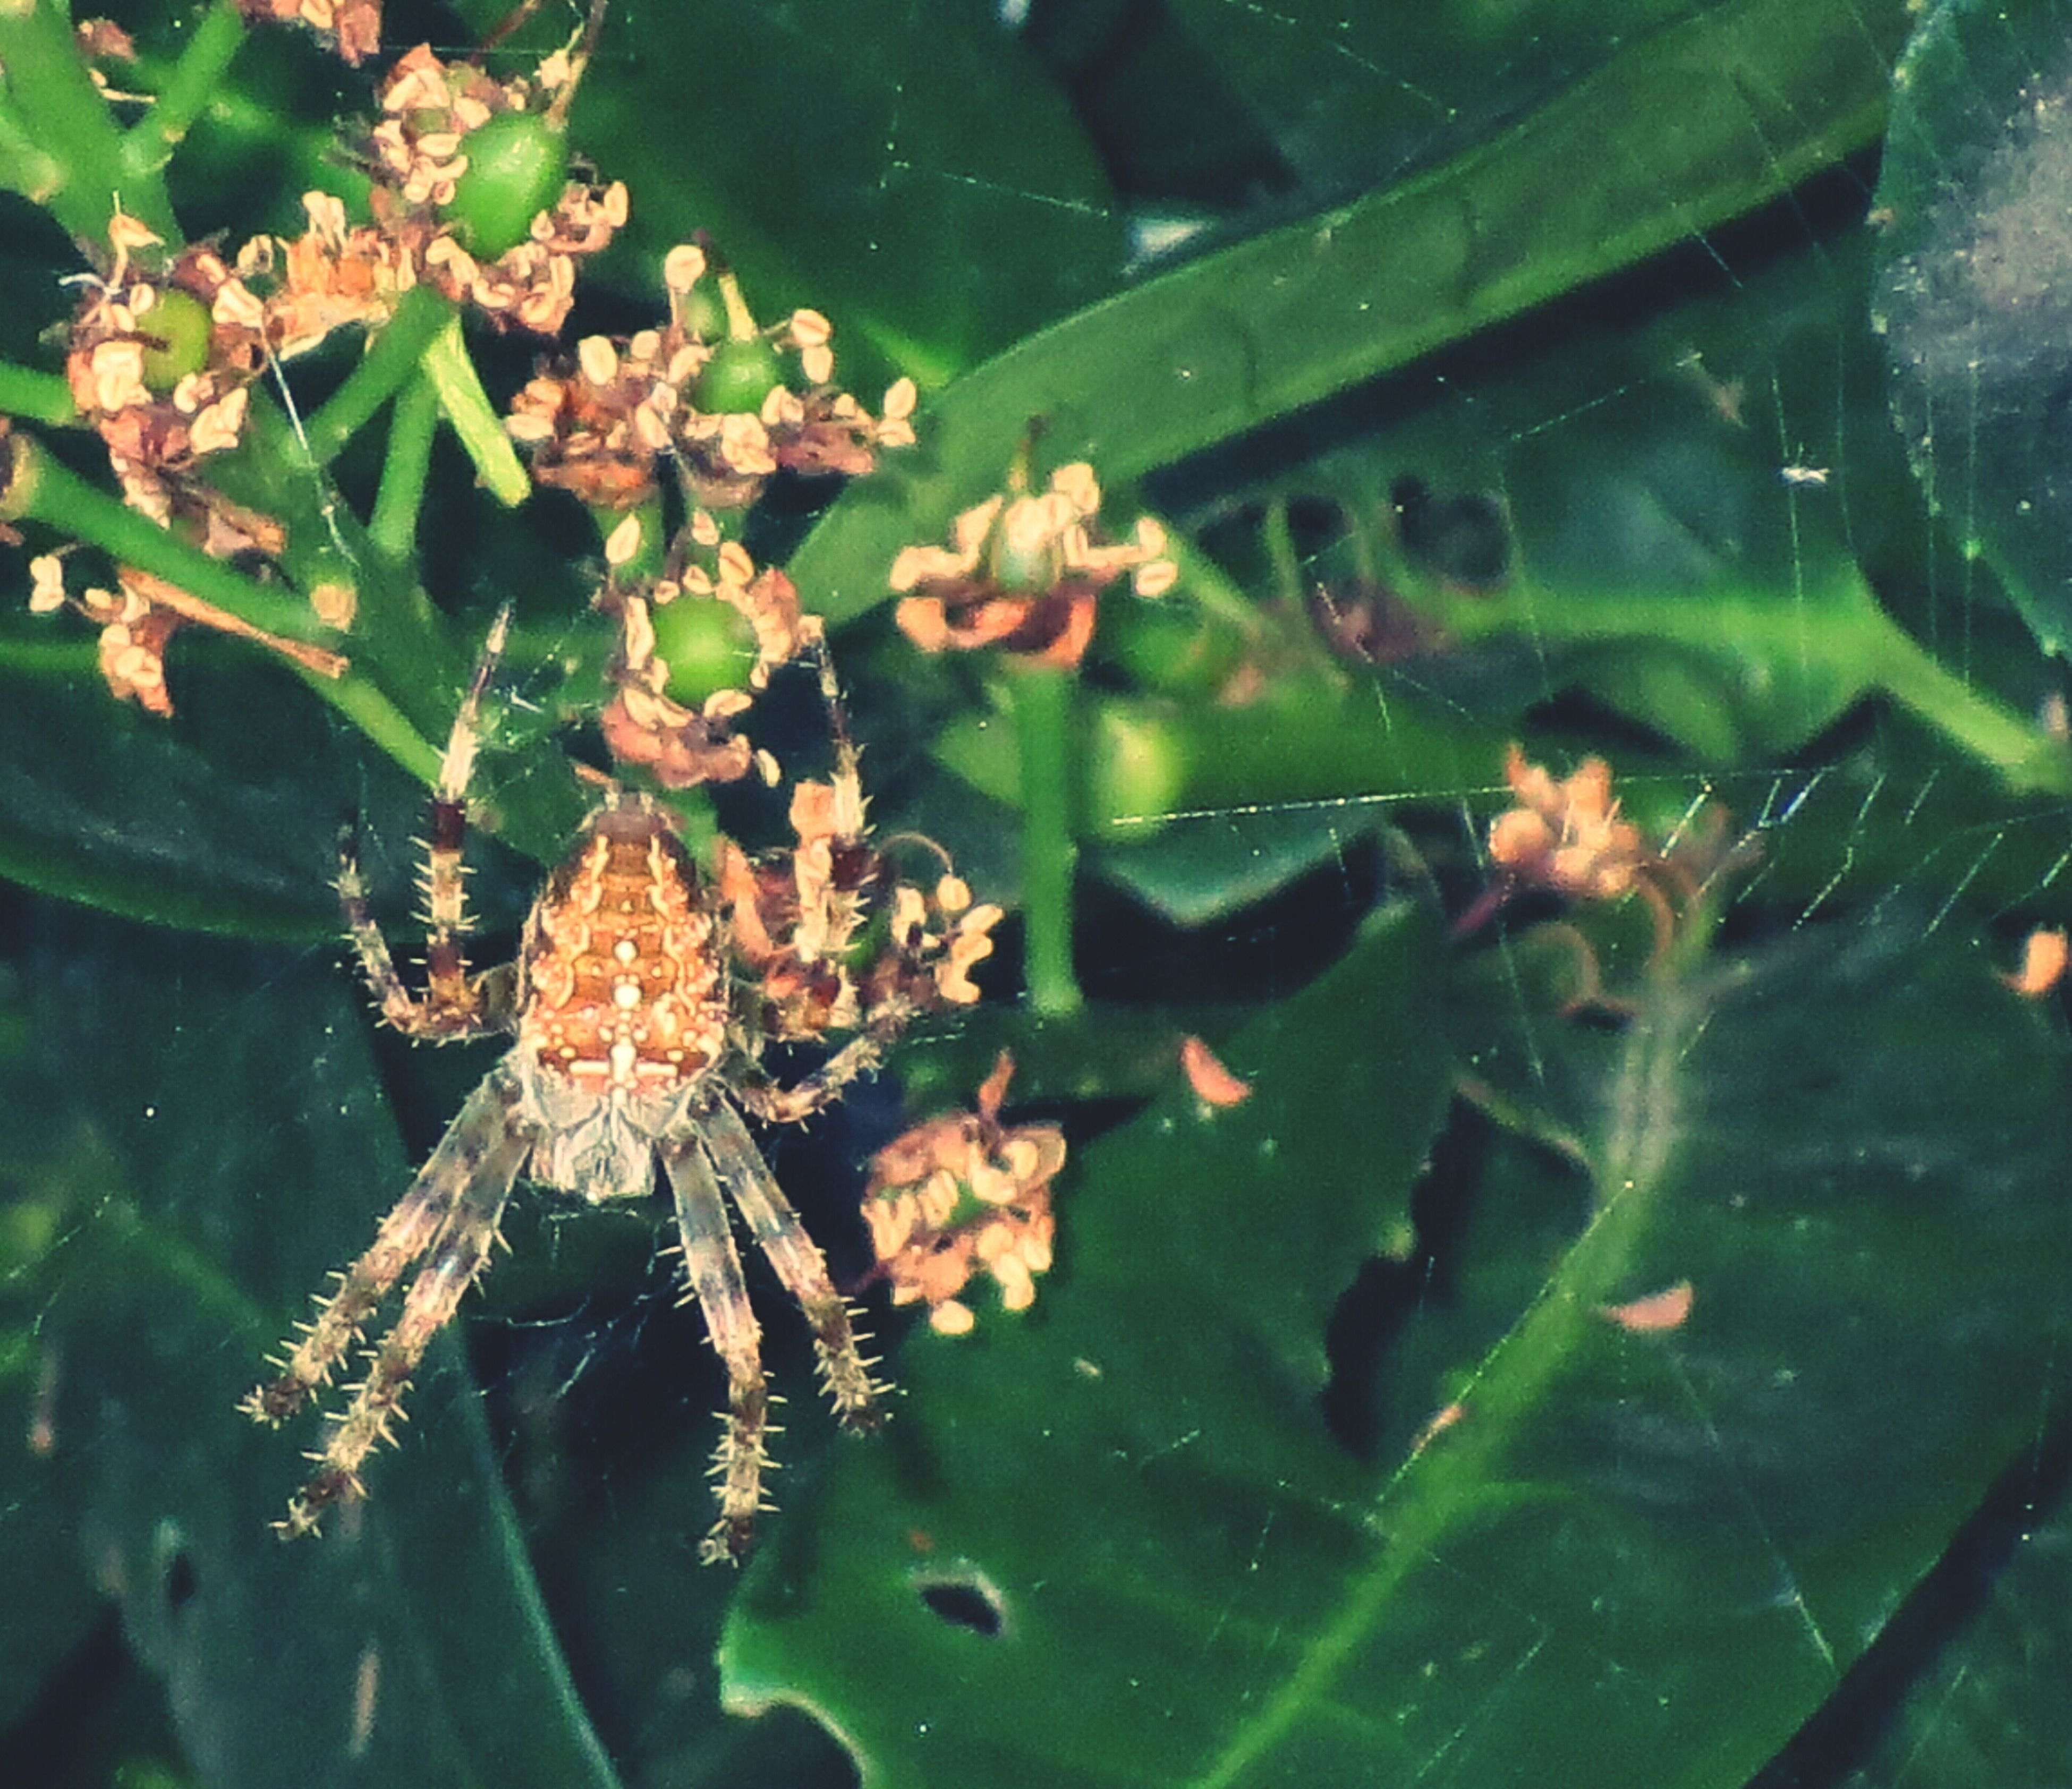 leaf, water, plant, nature, green color, high angle view, growth, close-up, pond, leaves, fragility, wet, drop, beauty in nature, day, freshness, outdoors, animal themes, reflection, spider web